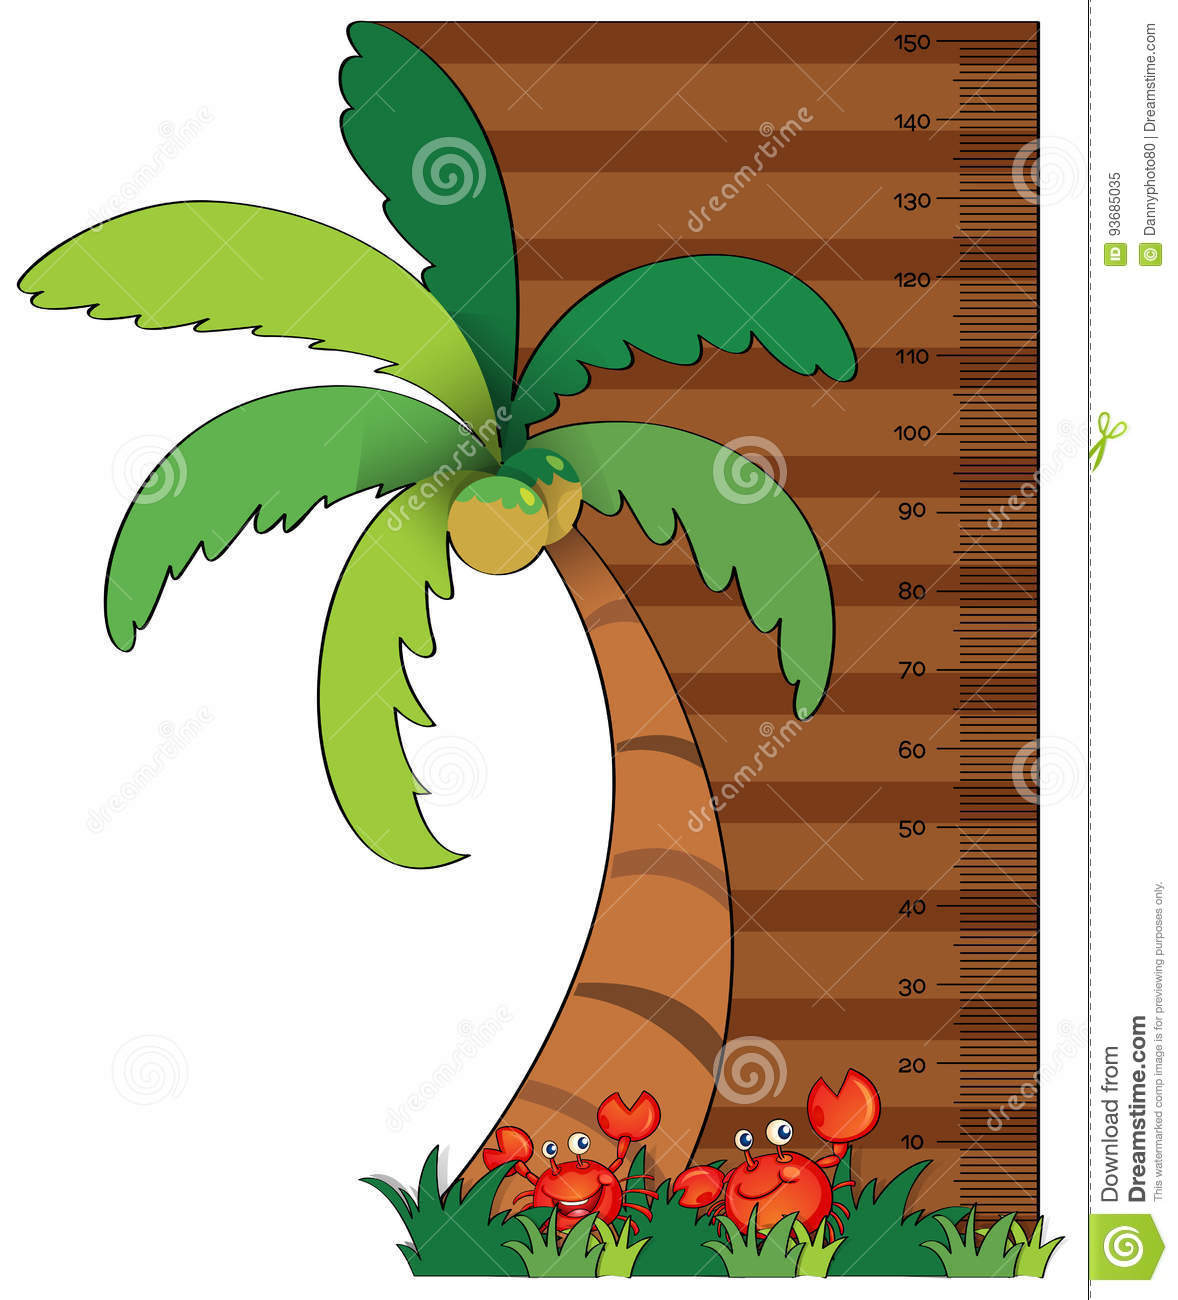 hight resolution of height measurement chart with coconut tree